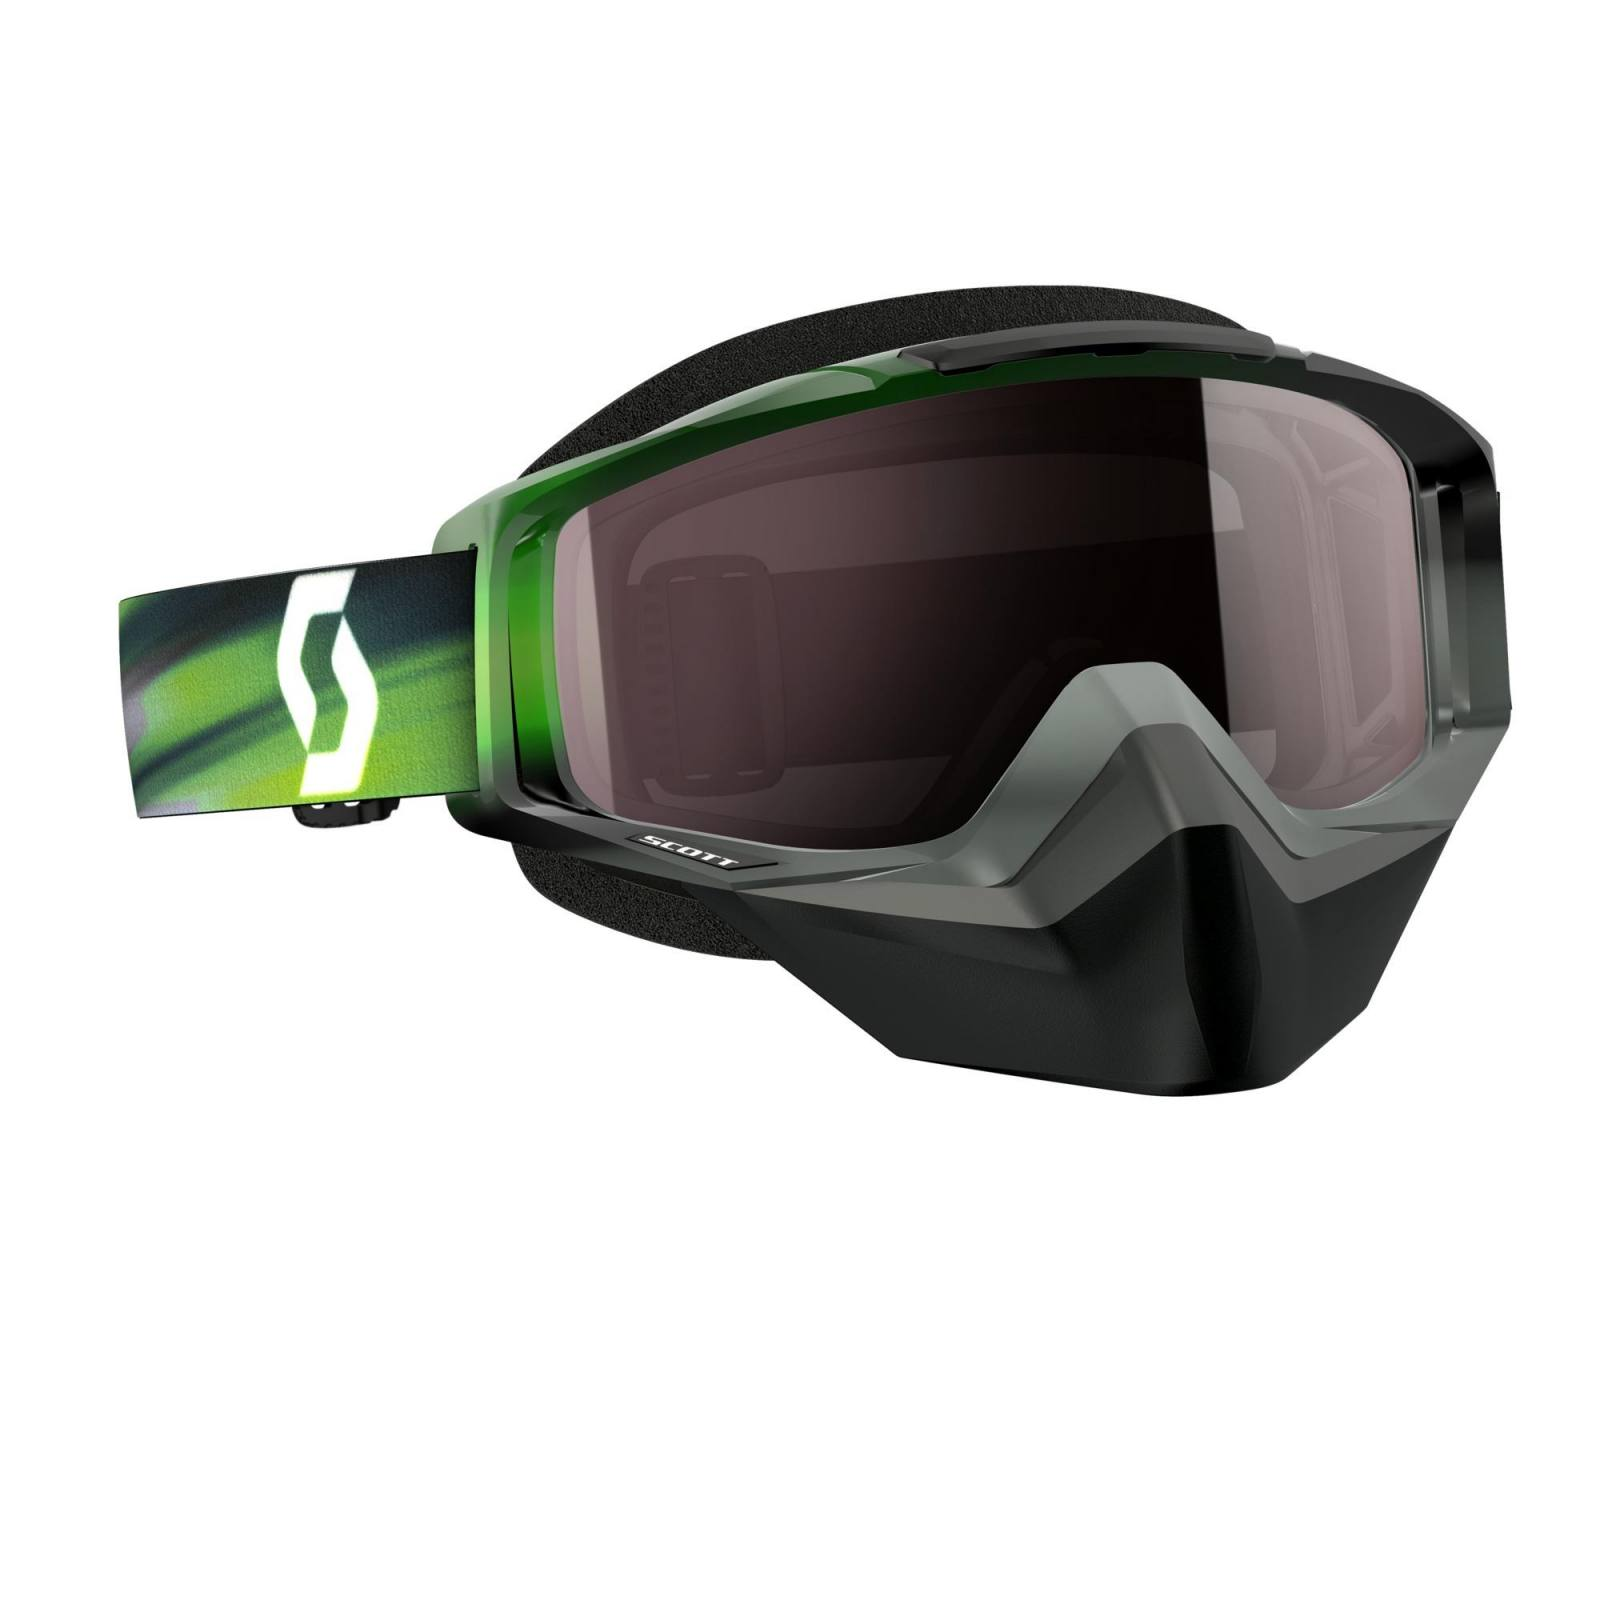 Tyrant Snow Cross Goggles for sale in JAMESTOWN 9dc479526abee